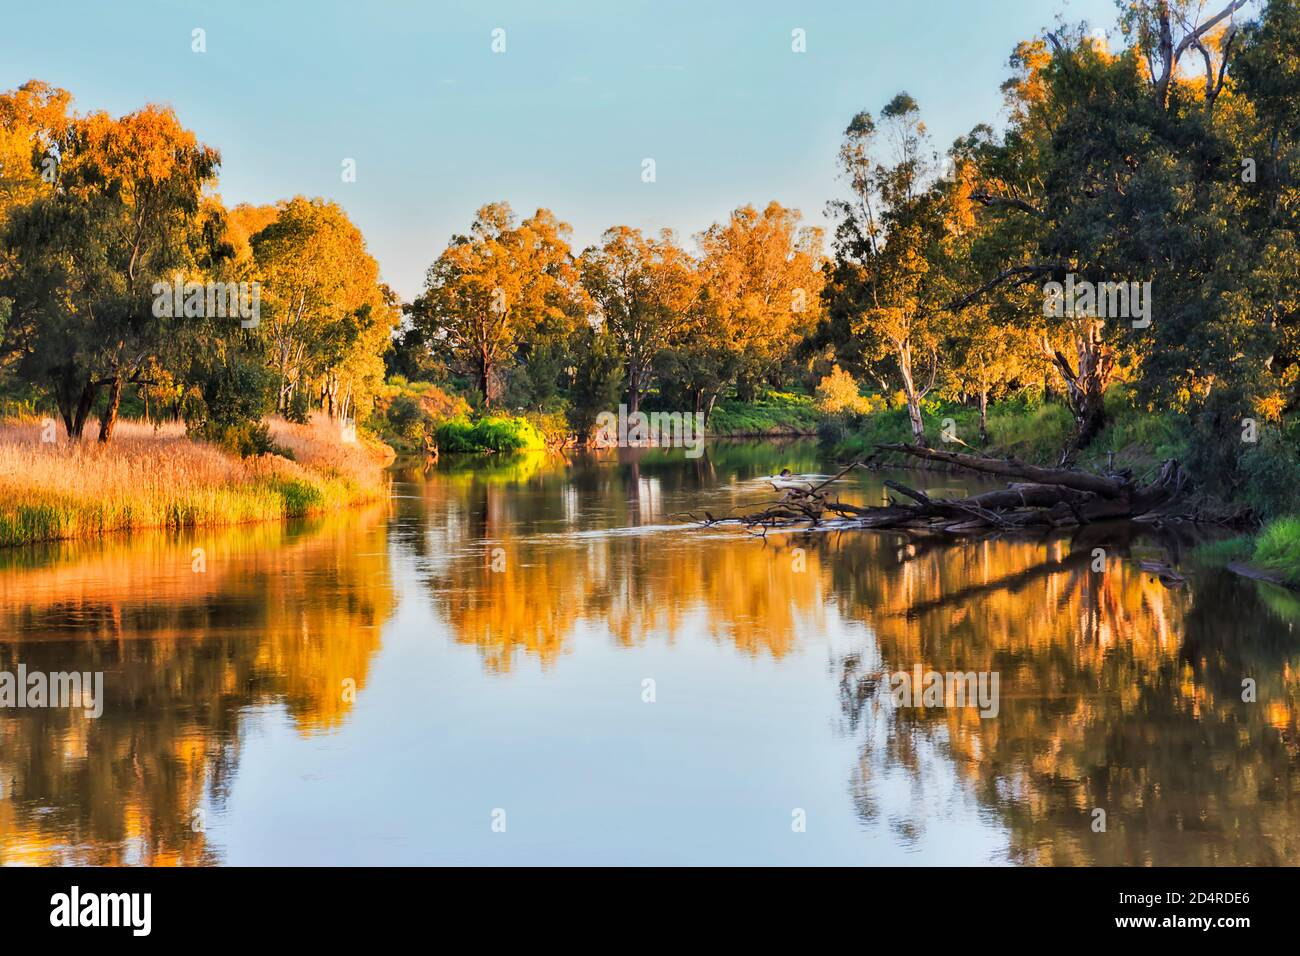 Scenic gumtrees and grass on shores of Macquarie river in Dubbo city of Australia western plains - NSW. Stock Photo